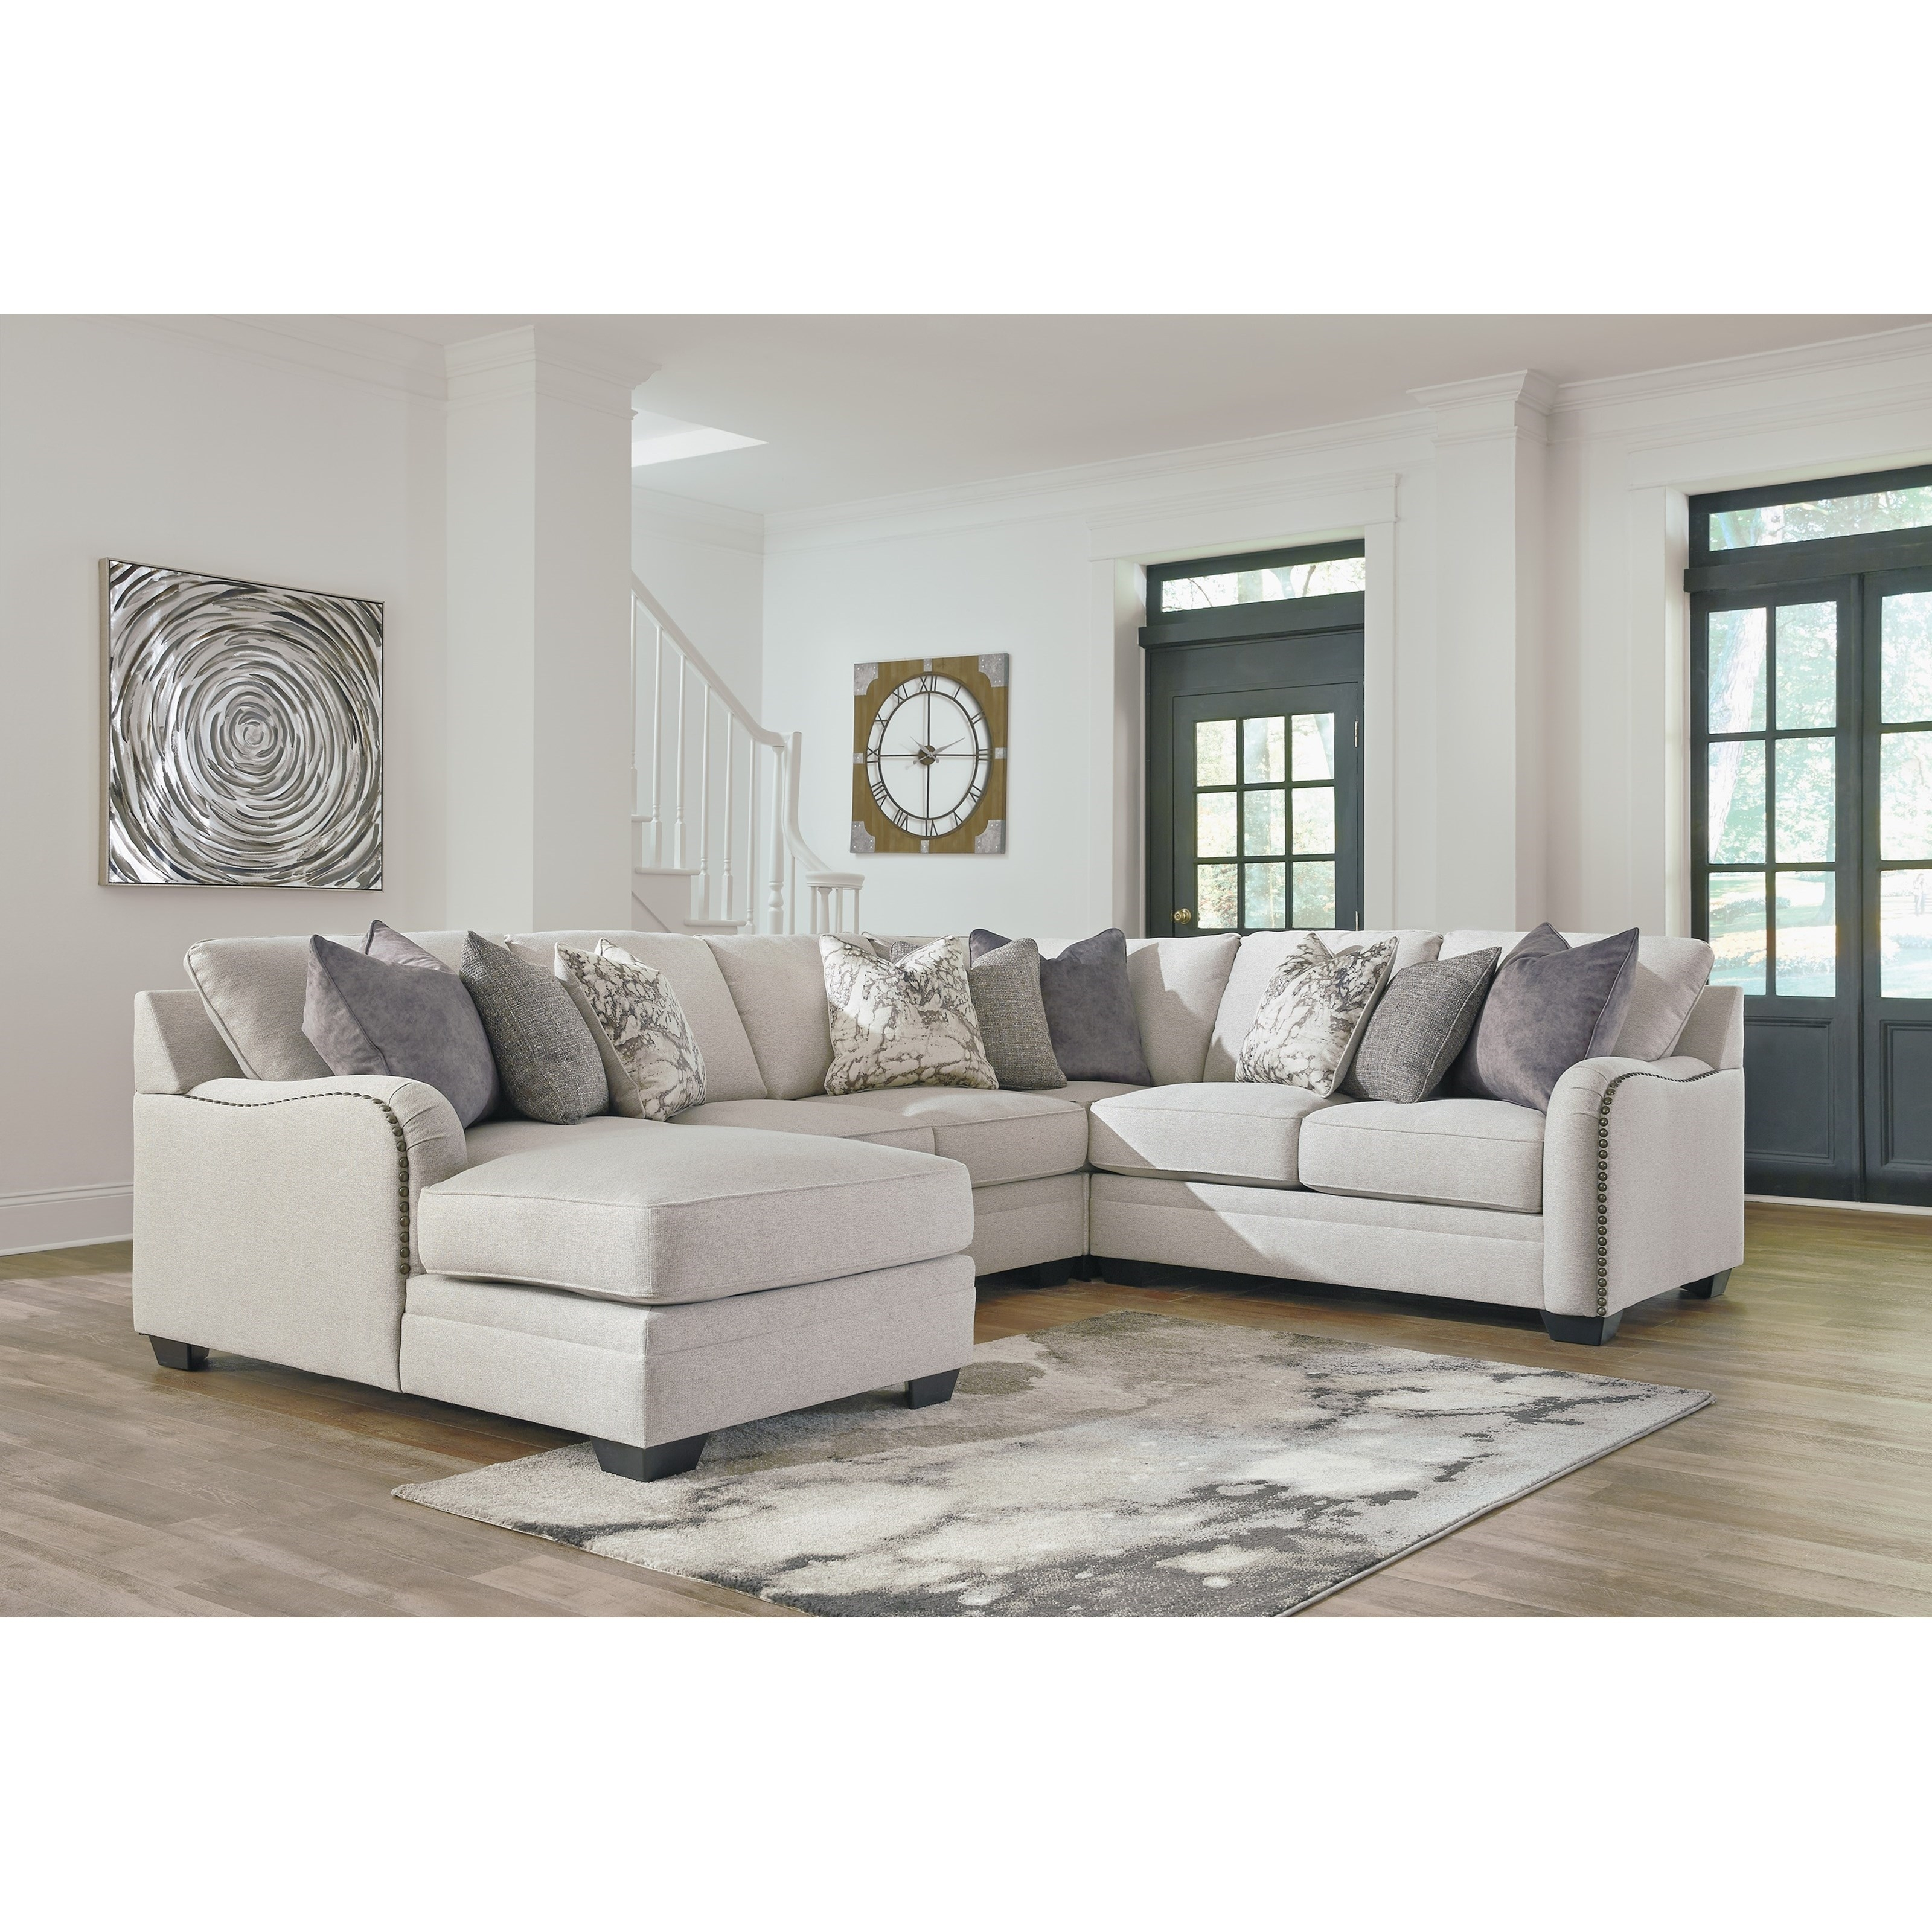 Dellara Casual 4 Piece Sectional With Left Chaise | Becker Furniture Regarding Blaine 4 Piece Sectionals (Image 8 of 25)